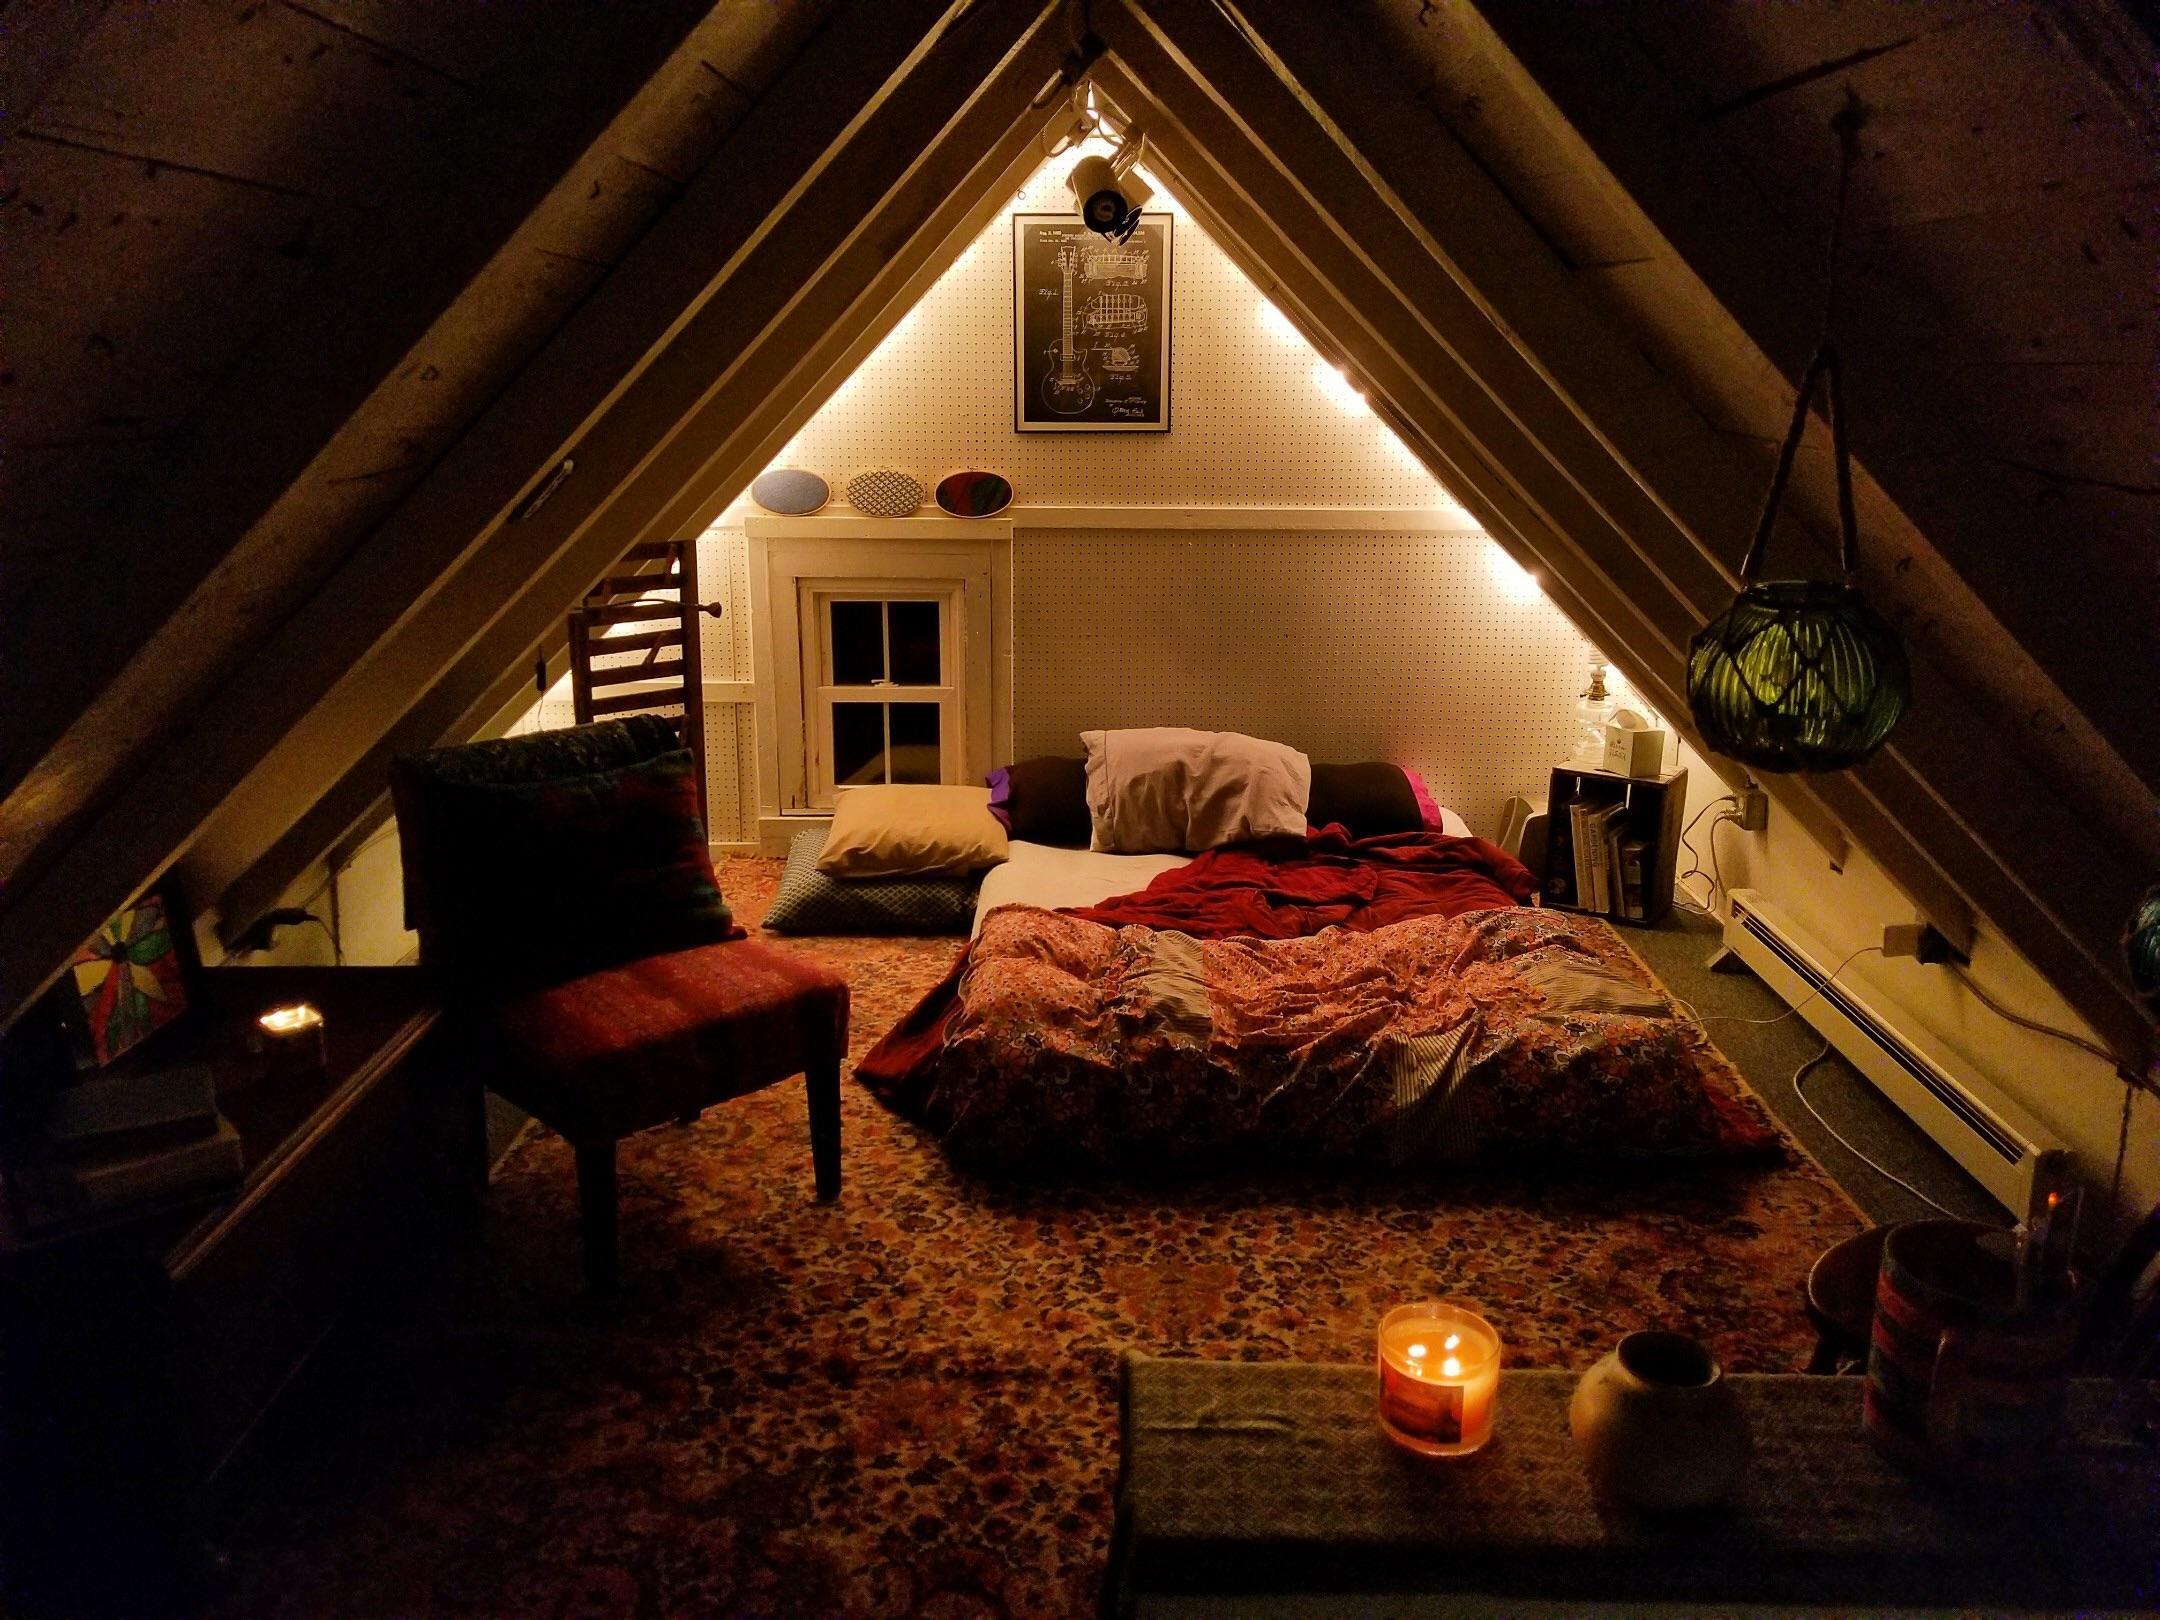 Hearing rain on the roof makes this cozy bedroom extra cozy : CozyPlaces